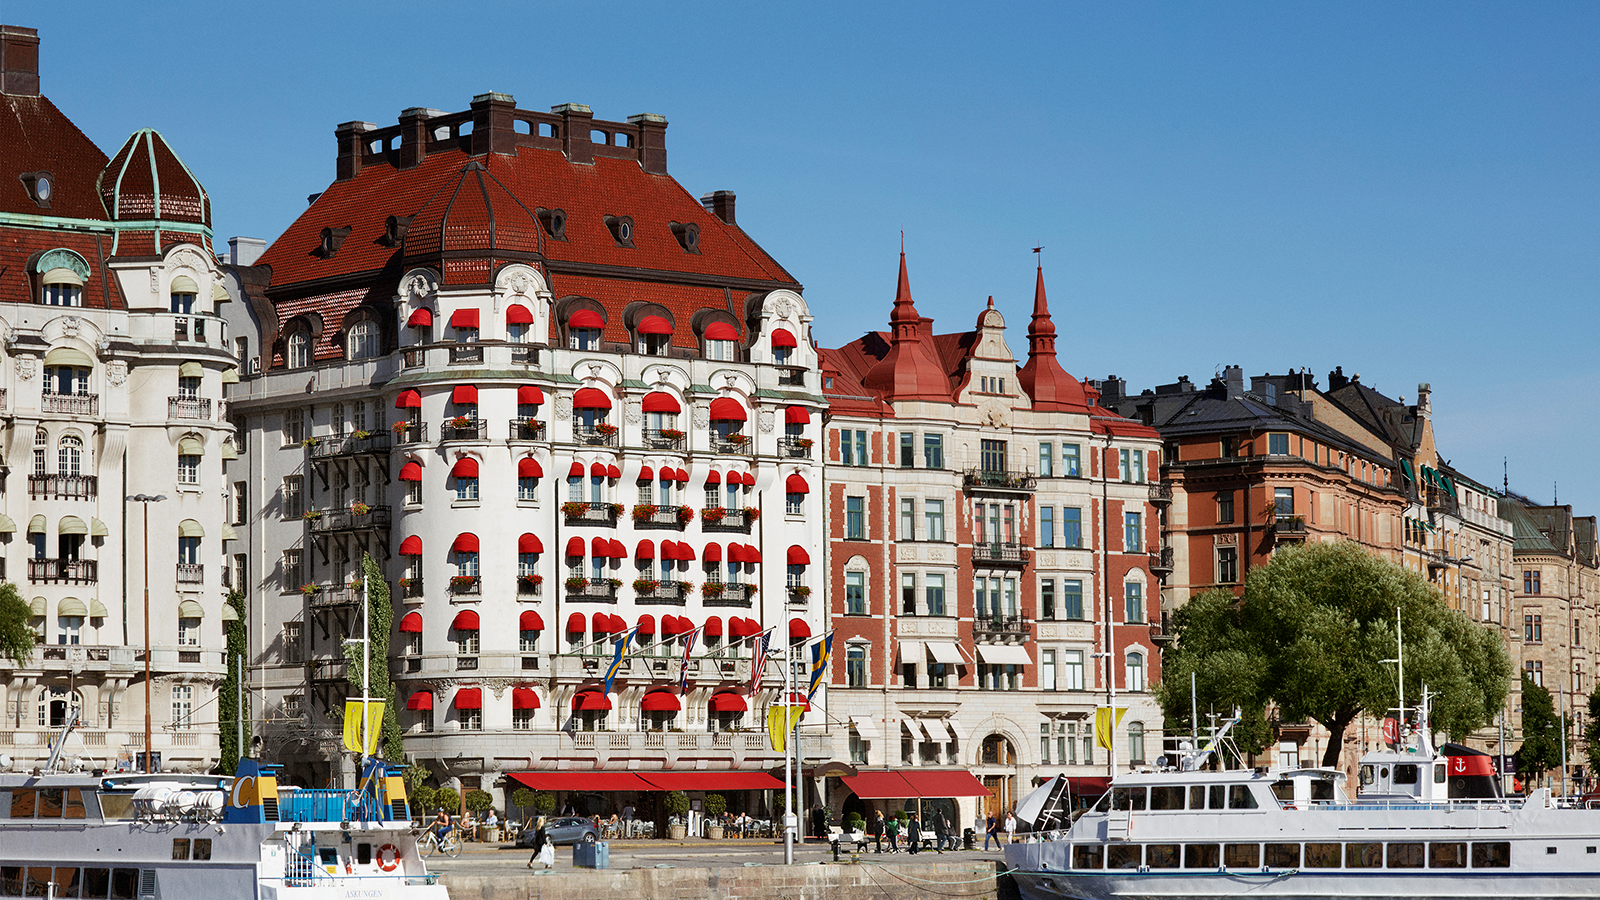 Image of External View of Hotel, Hotel Diplomat, Stockholm Sweden, Overview